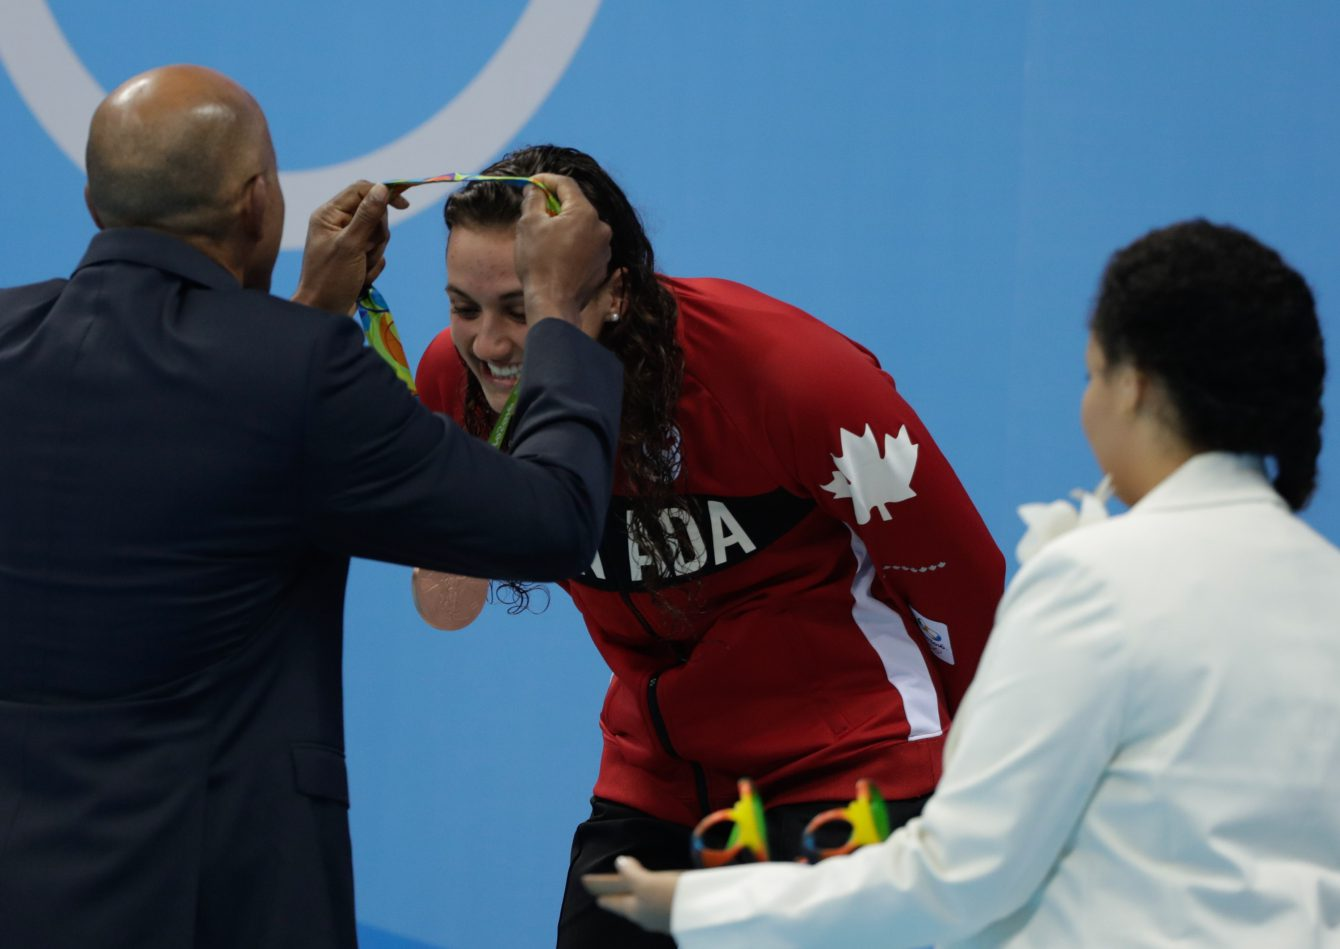 Canada's Kylie Masse being awarded her bronze medal after her 100m backstroke race on August 8, 2016 (photo/Jason Ransom)